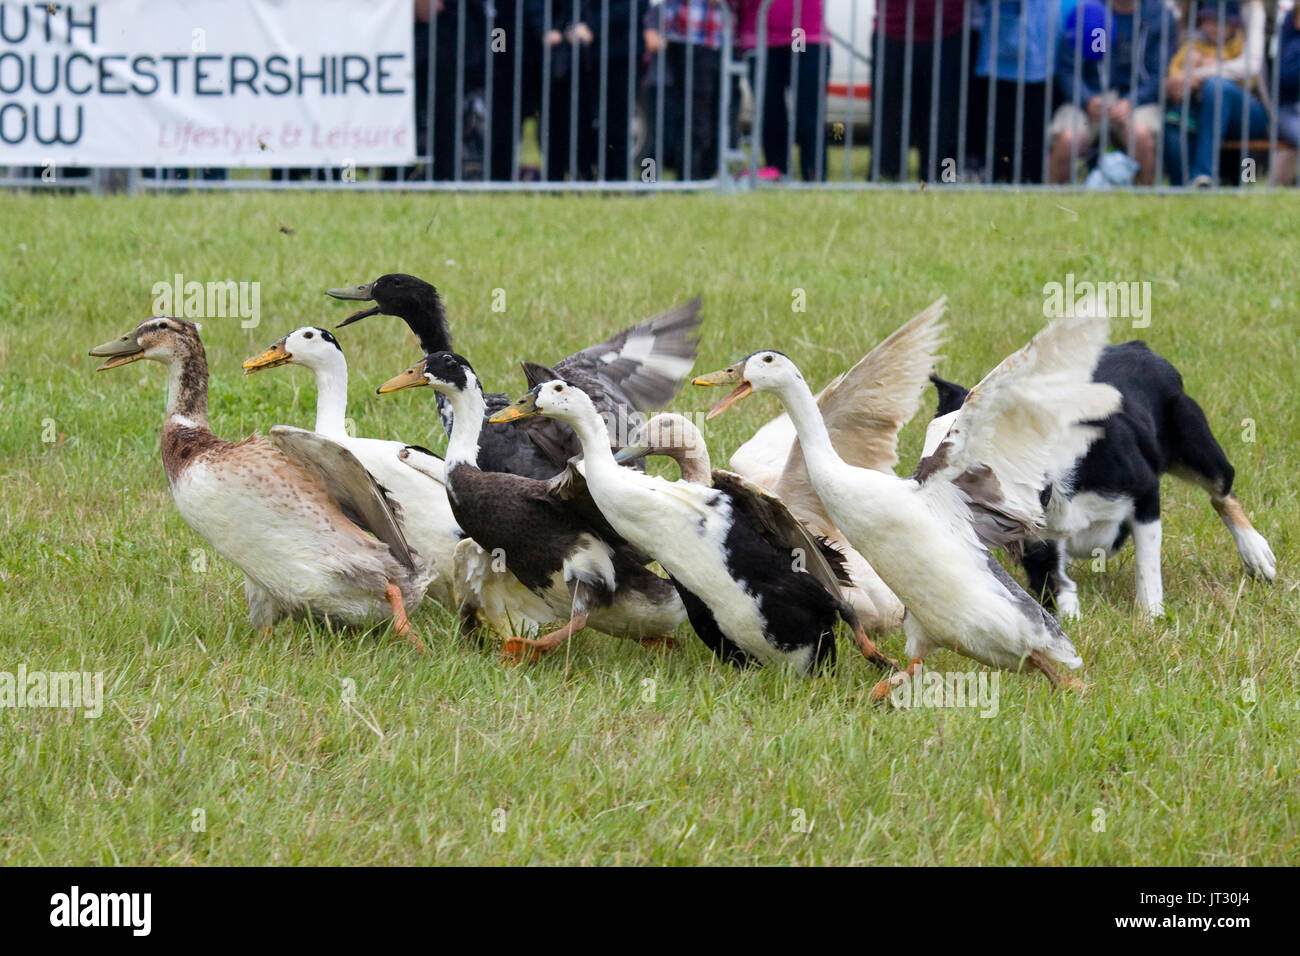 Indian Runner ducks being rounded up by a sheep dog - Stock Image